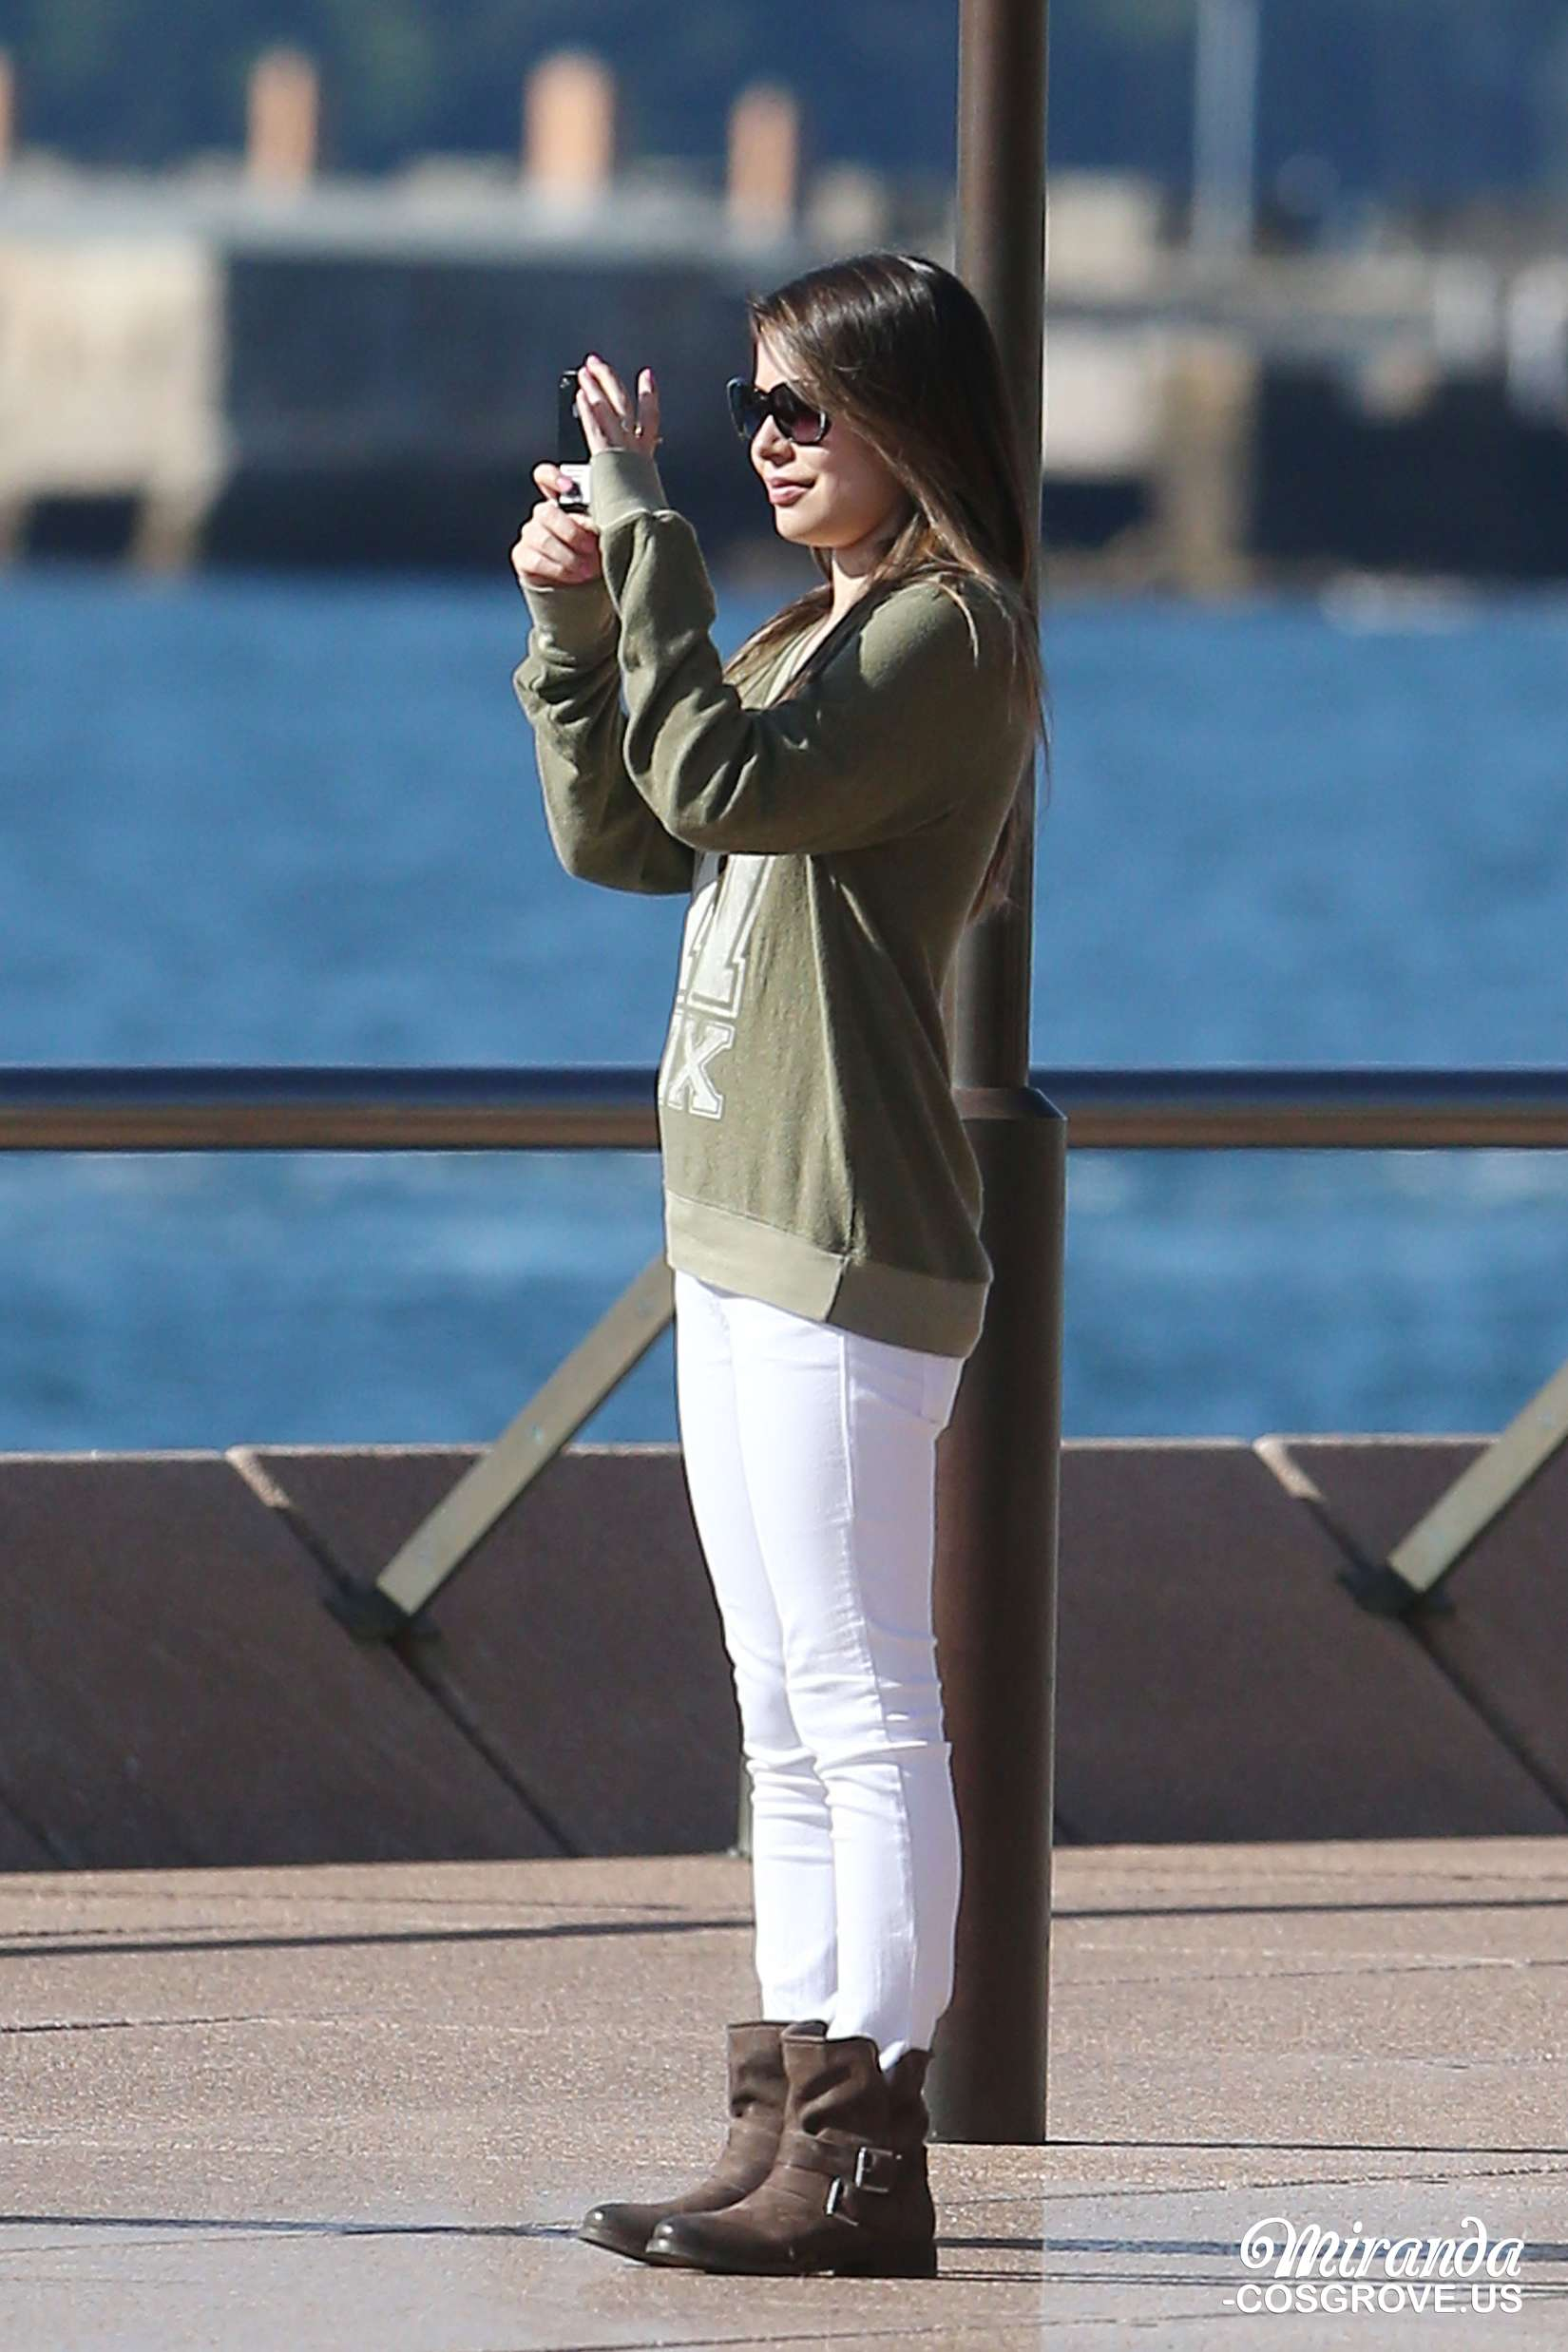 Miranda Cosgrove at The Sydney Opera House -05 - Full SizeMiranda Cosgrove House